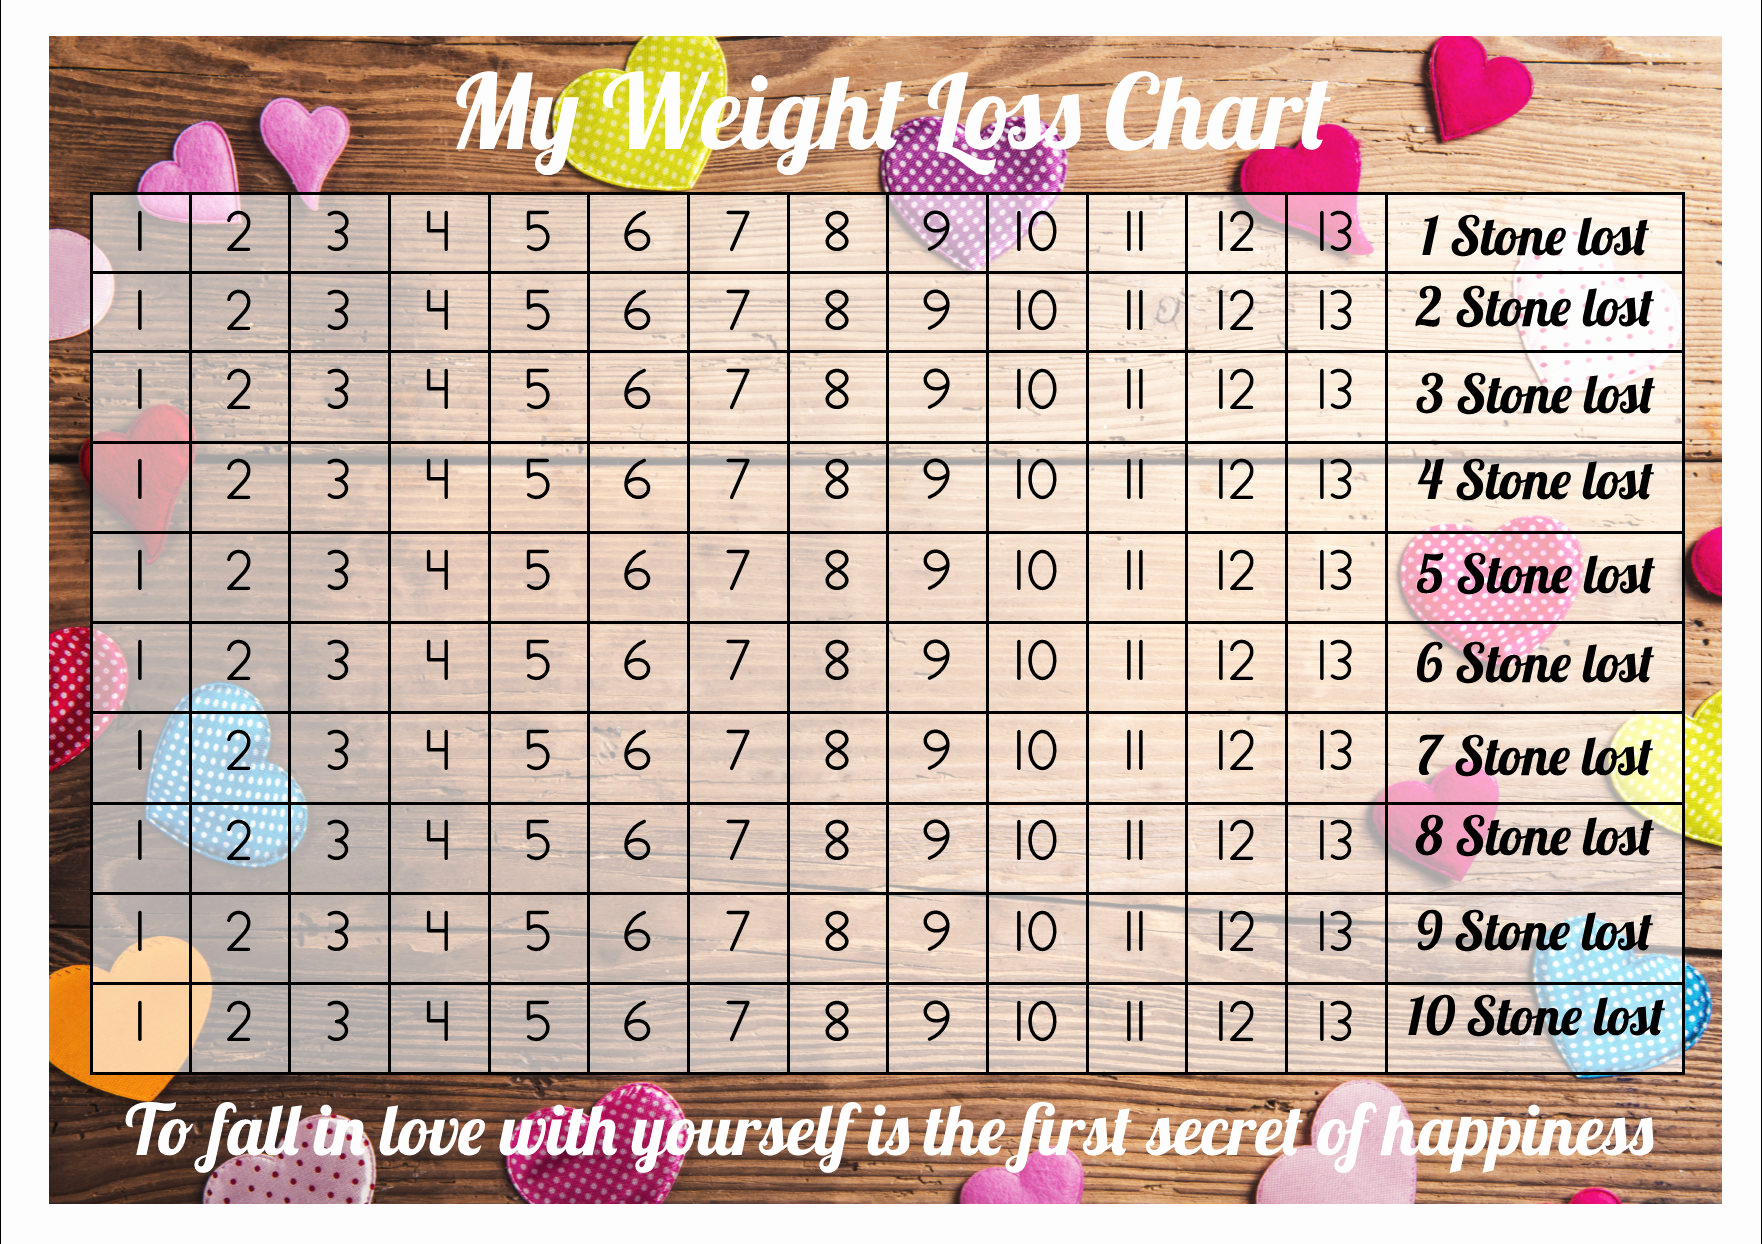 Weight Loss Progress Chart Inspirational Weight Loss Chart Tracker 10 Stone Es with Star